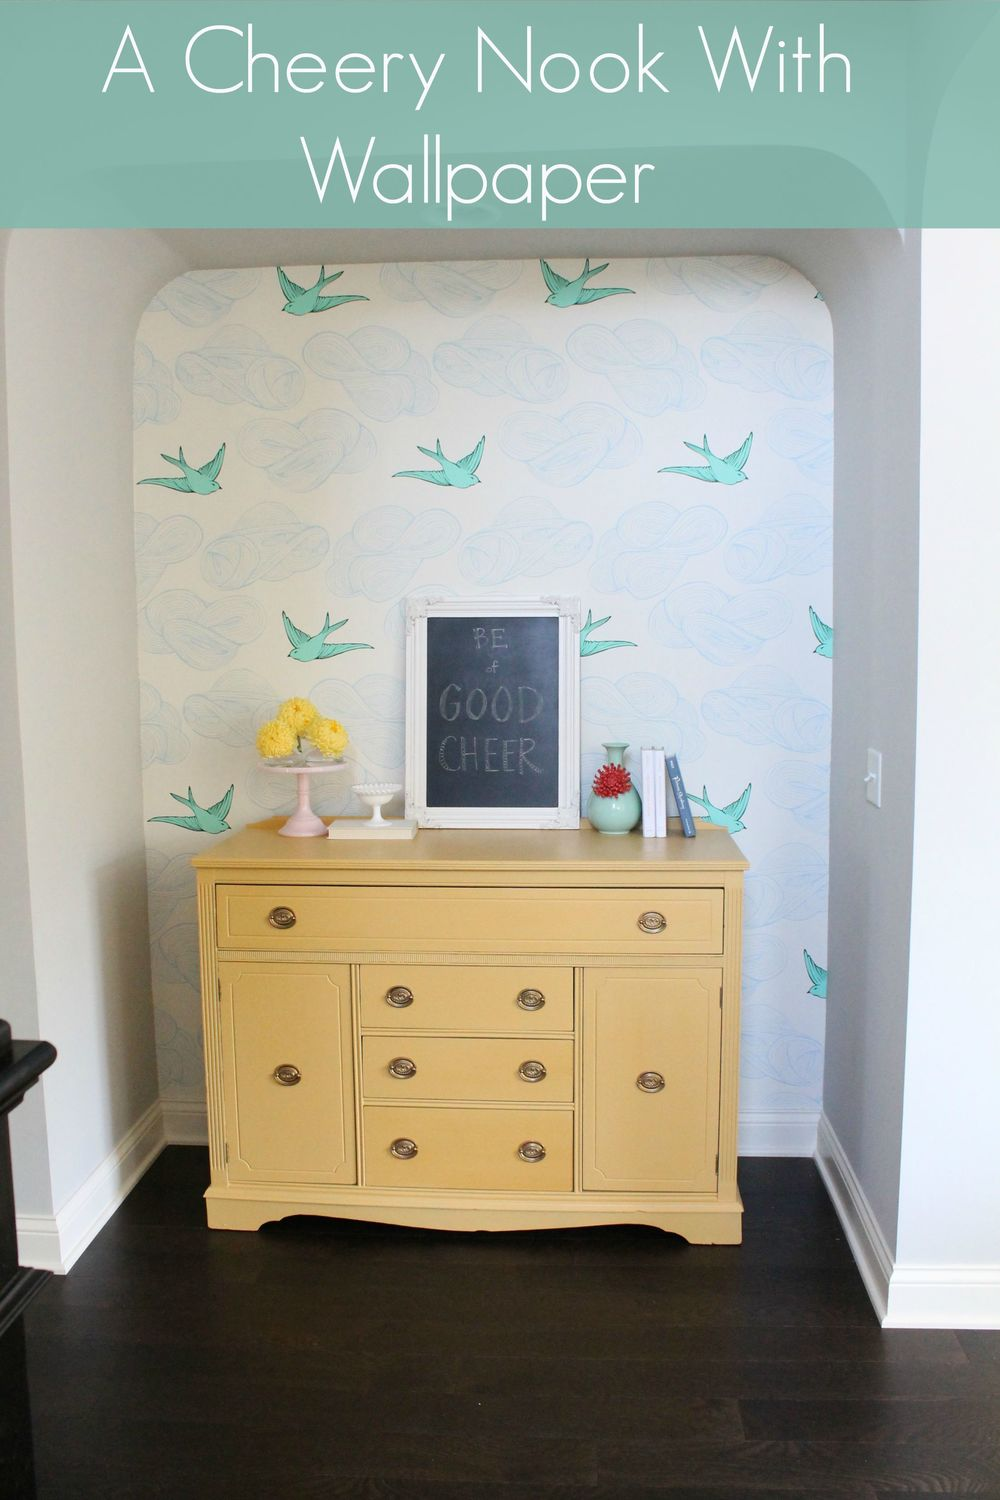 Cheery Nook with Wallpaper